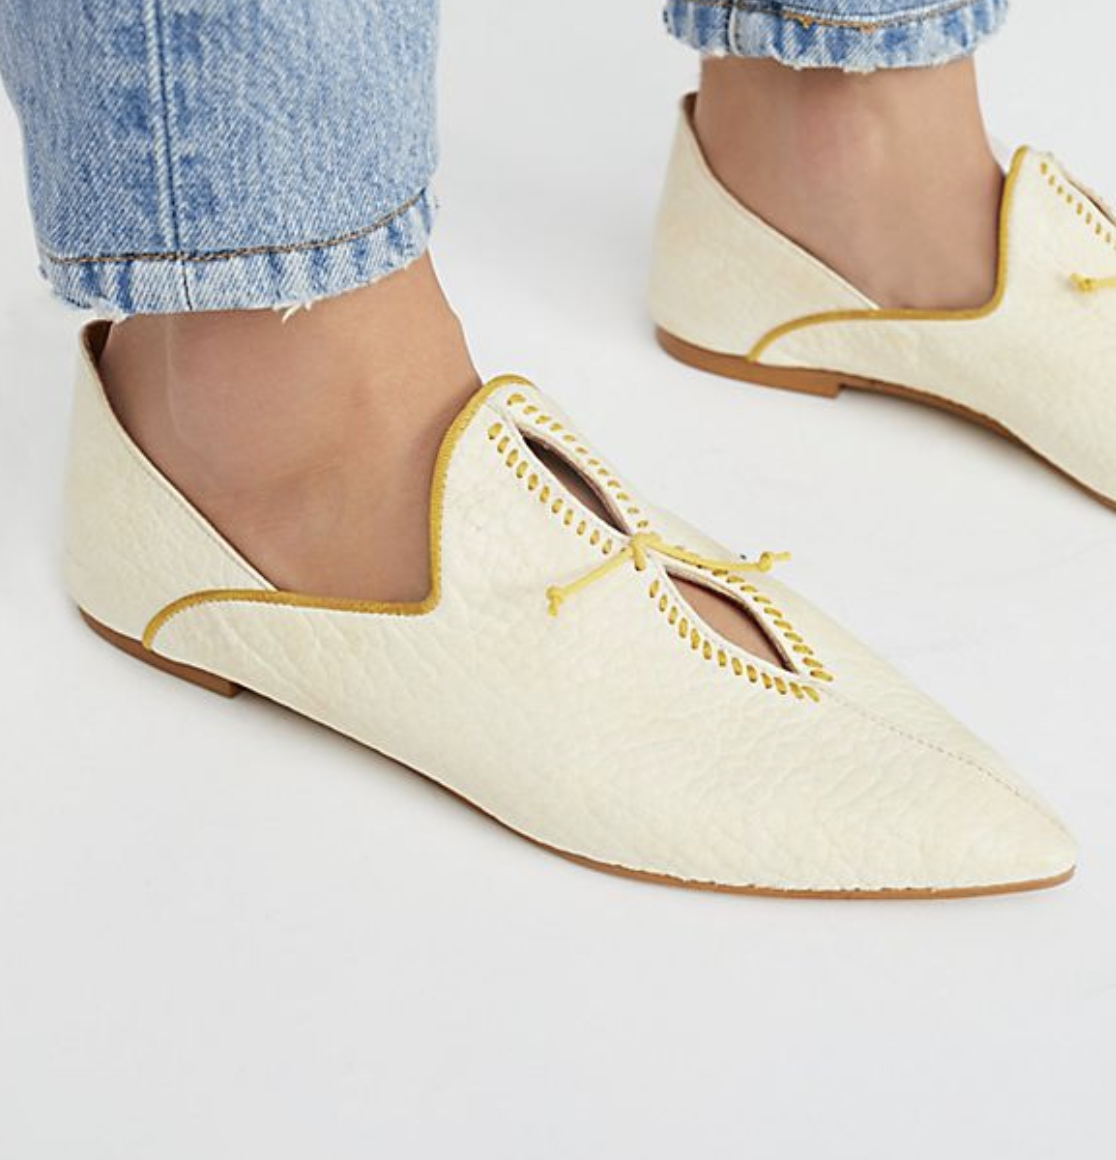 80% off Anthropologie Shoes - Anthropologie Oxford Suede